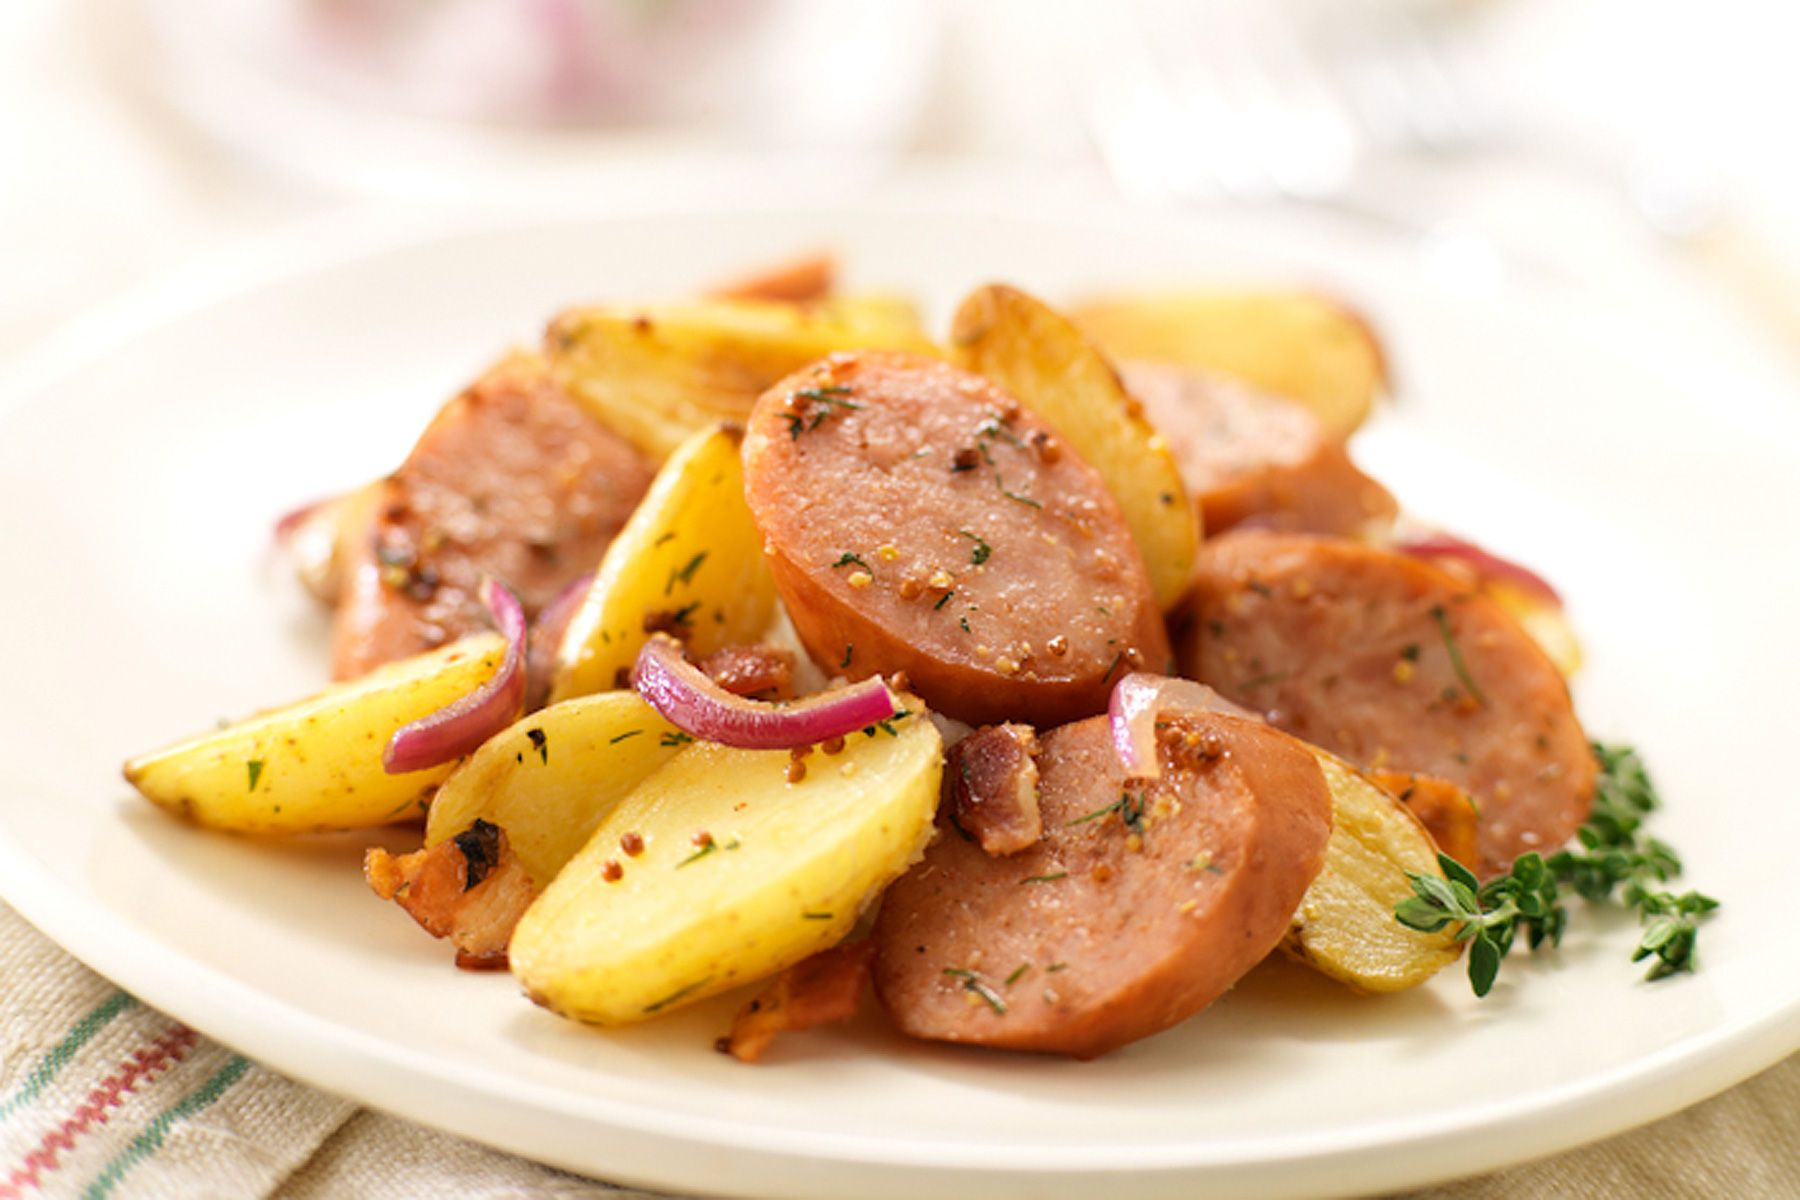 Sausage and fingerling potatoes